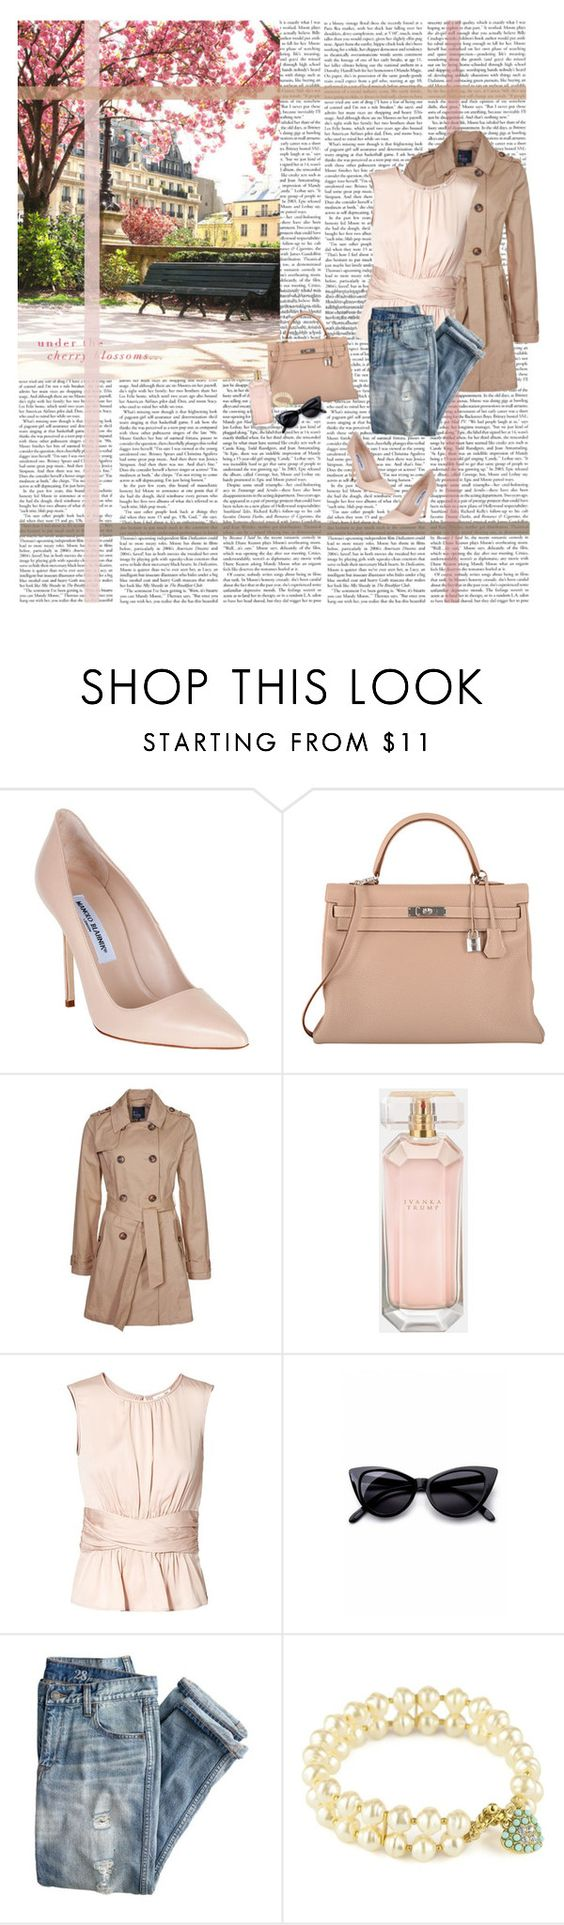 """Ivanka in Spring"" by class-in-the-corner-office ❤ liked on Polyvore featuring Manolo Blahnik, Hermès, even&odd, Ivanka Trump, Paule Ka, Retrò and J.Crew"